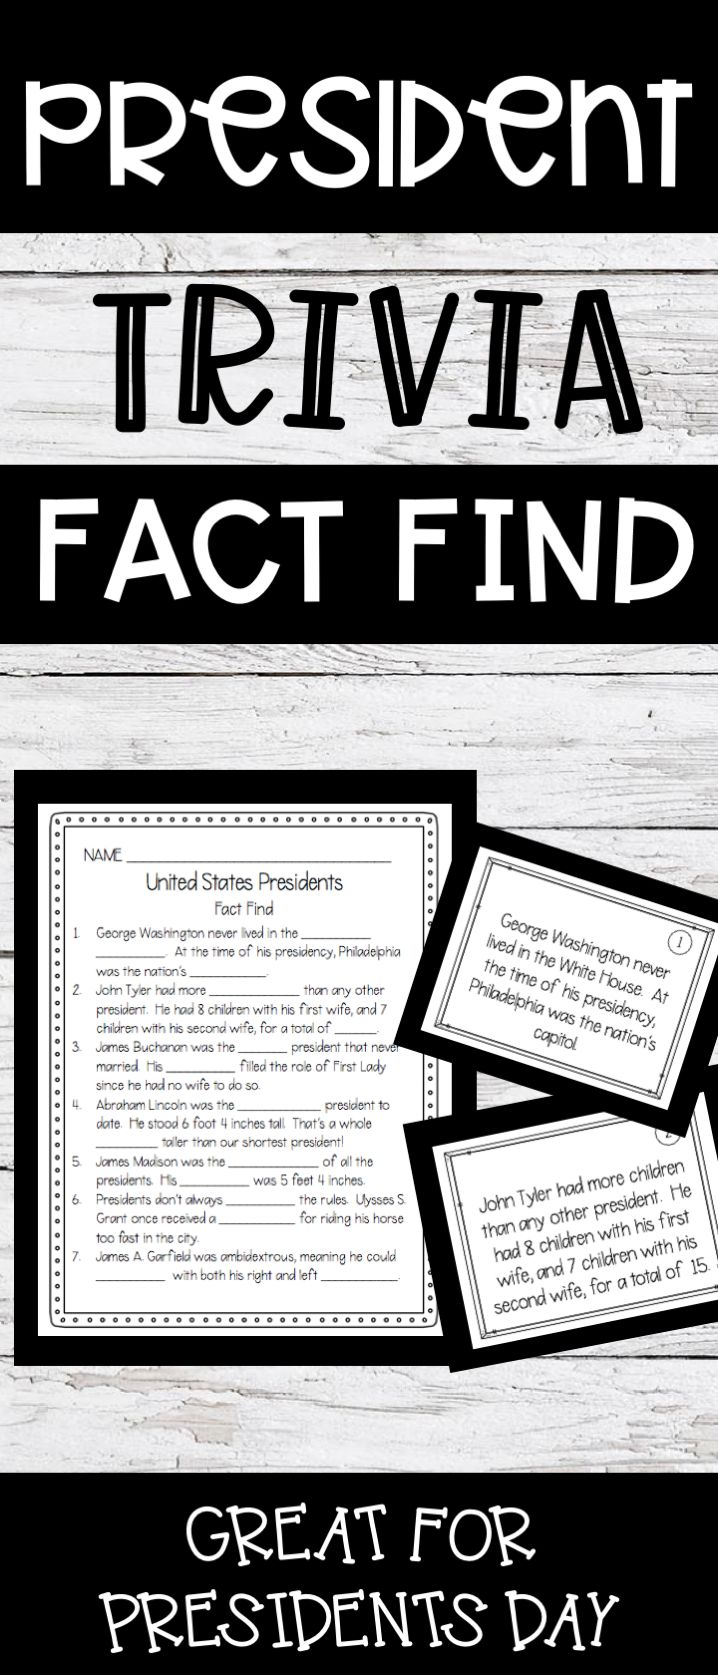 A fun activity to do with students on Presidents Day - Learn trivia and unknown facts about many of the US presidents in a scavenger hunt style activity